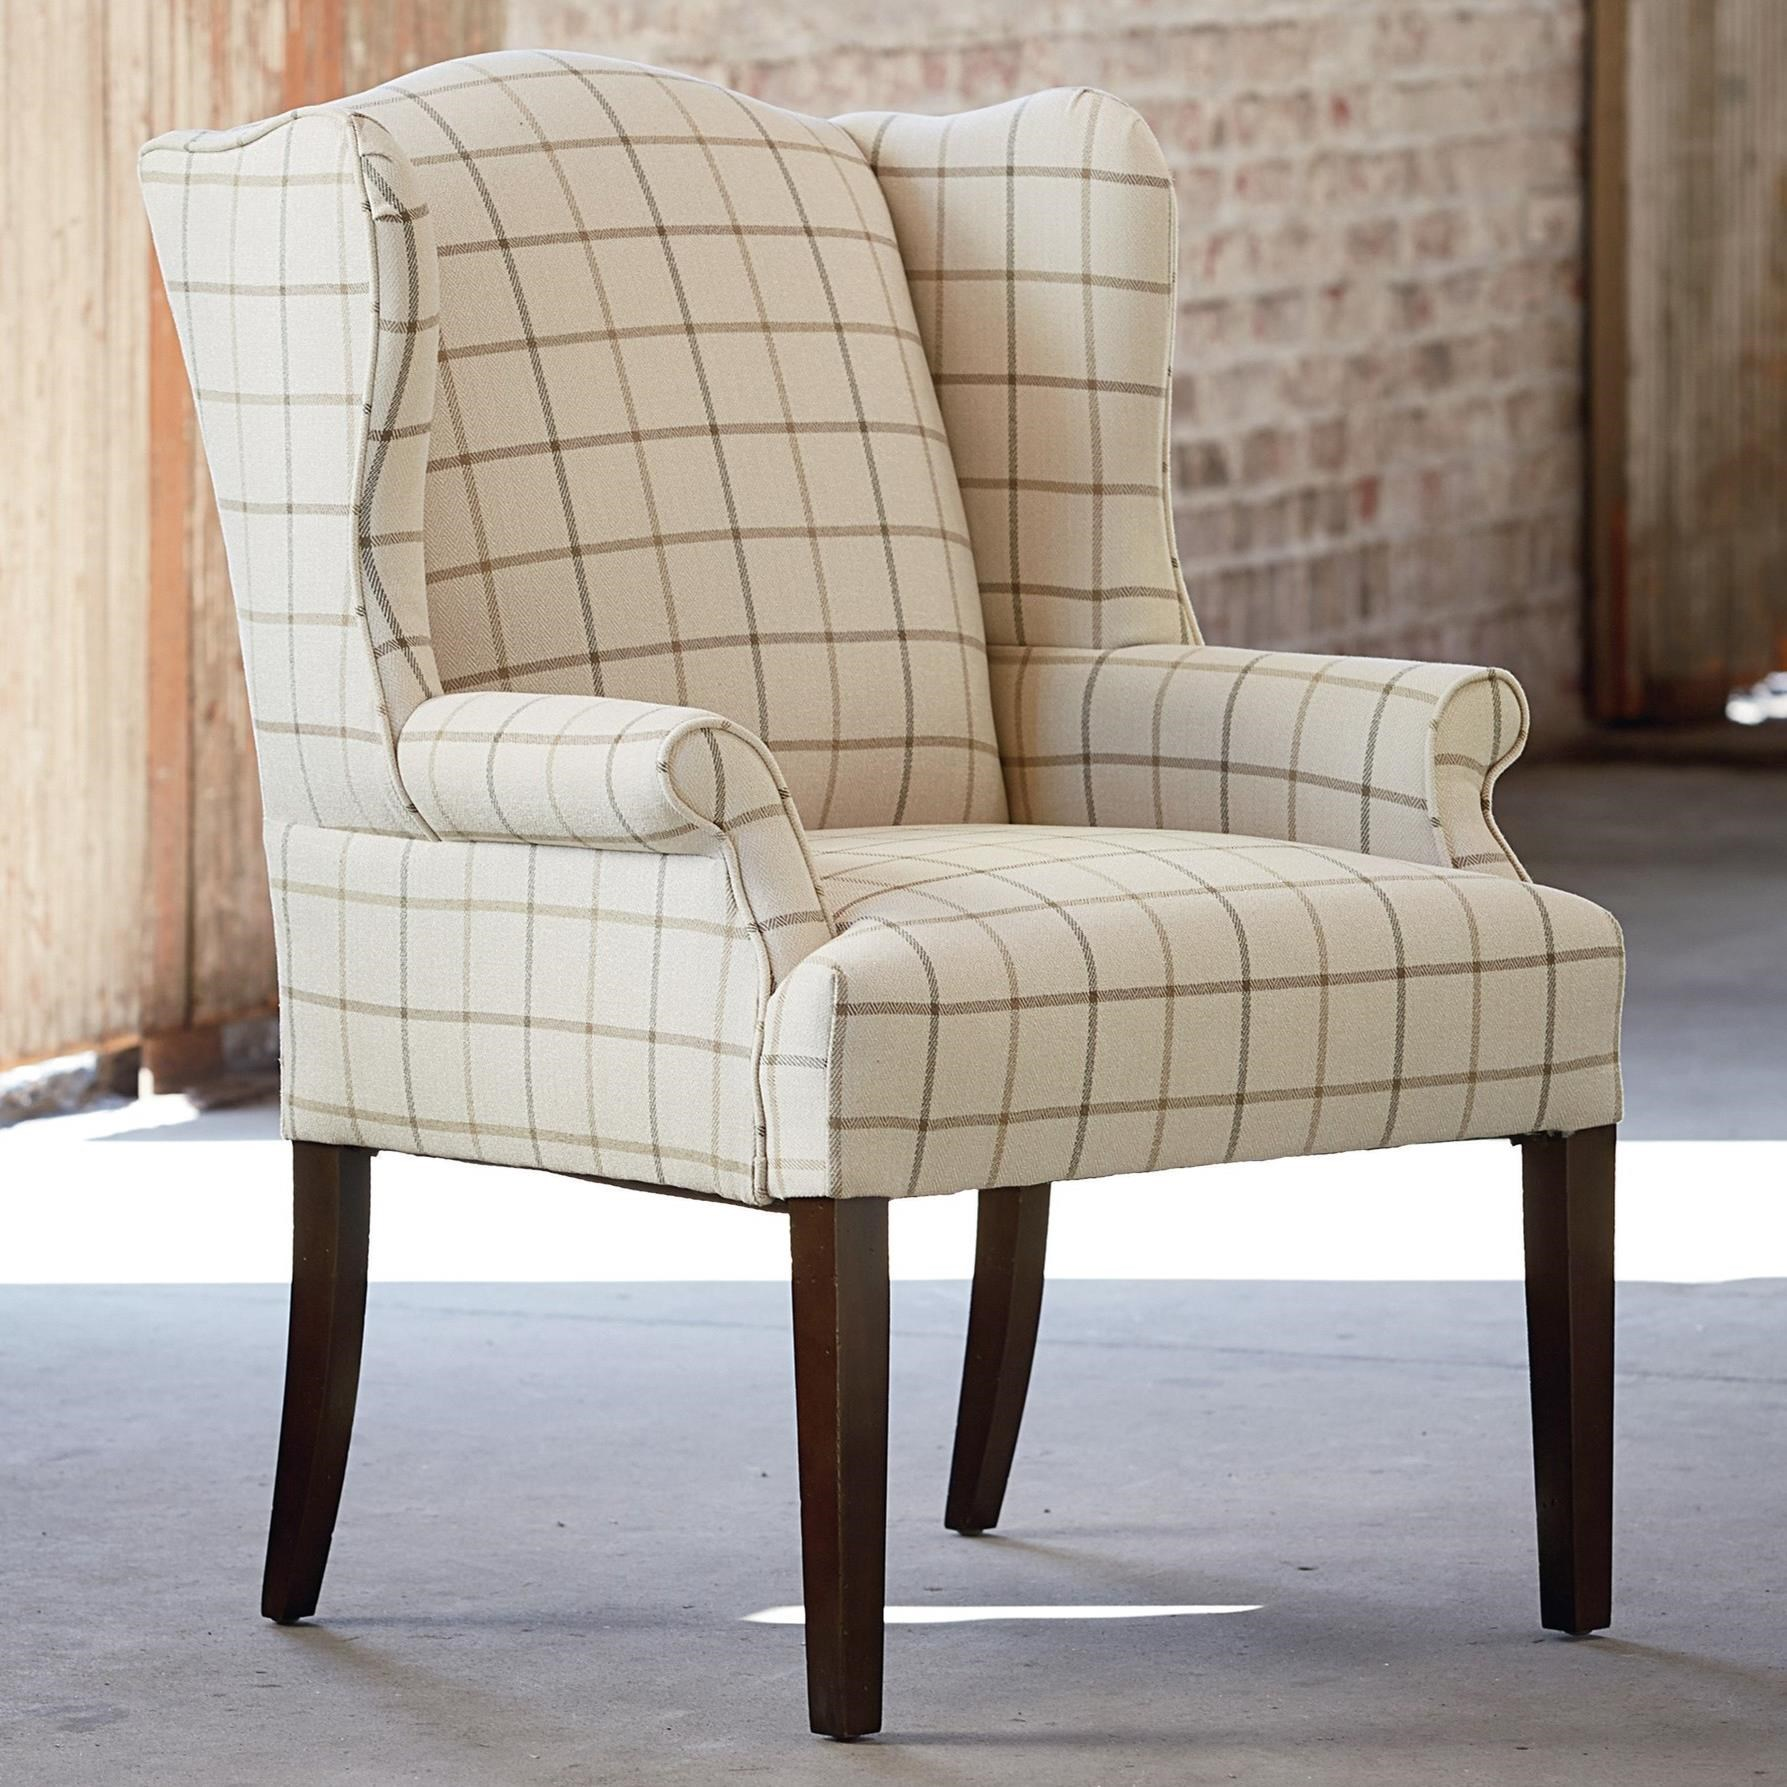 Arden Dining Chair by Bassett at H.L. Stephens